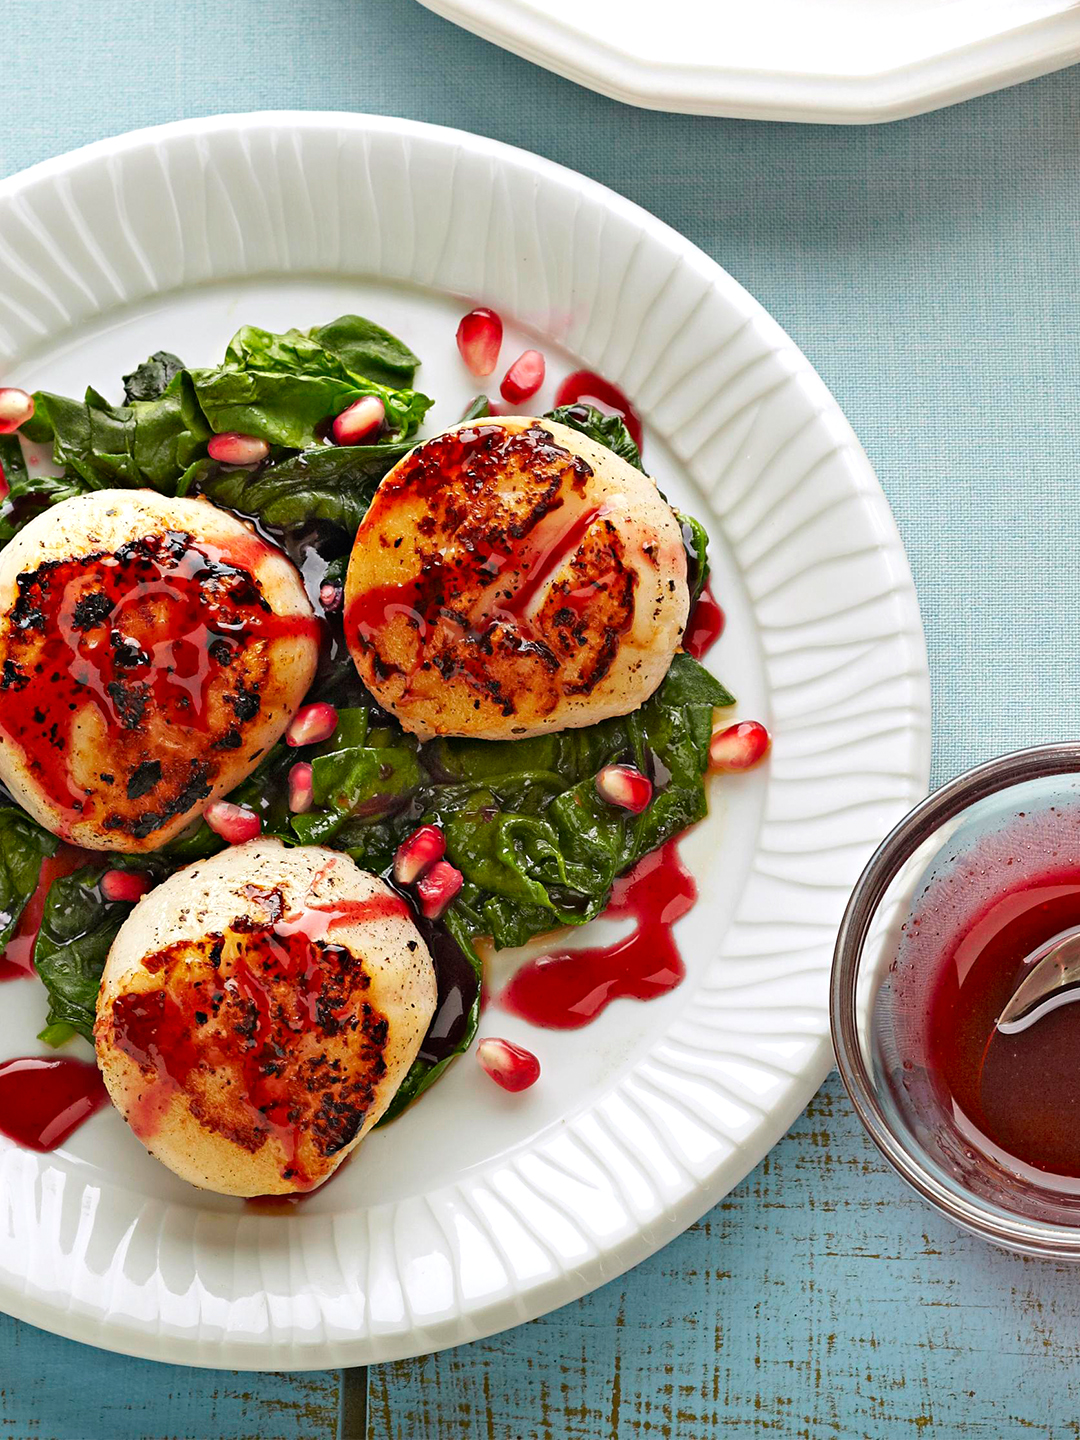 Seared Scallops and Baby Spinach with Spiced Pomegranate Glaze on white plate